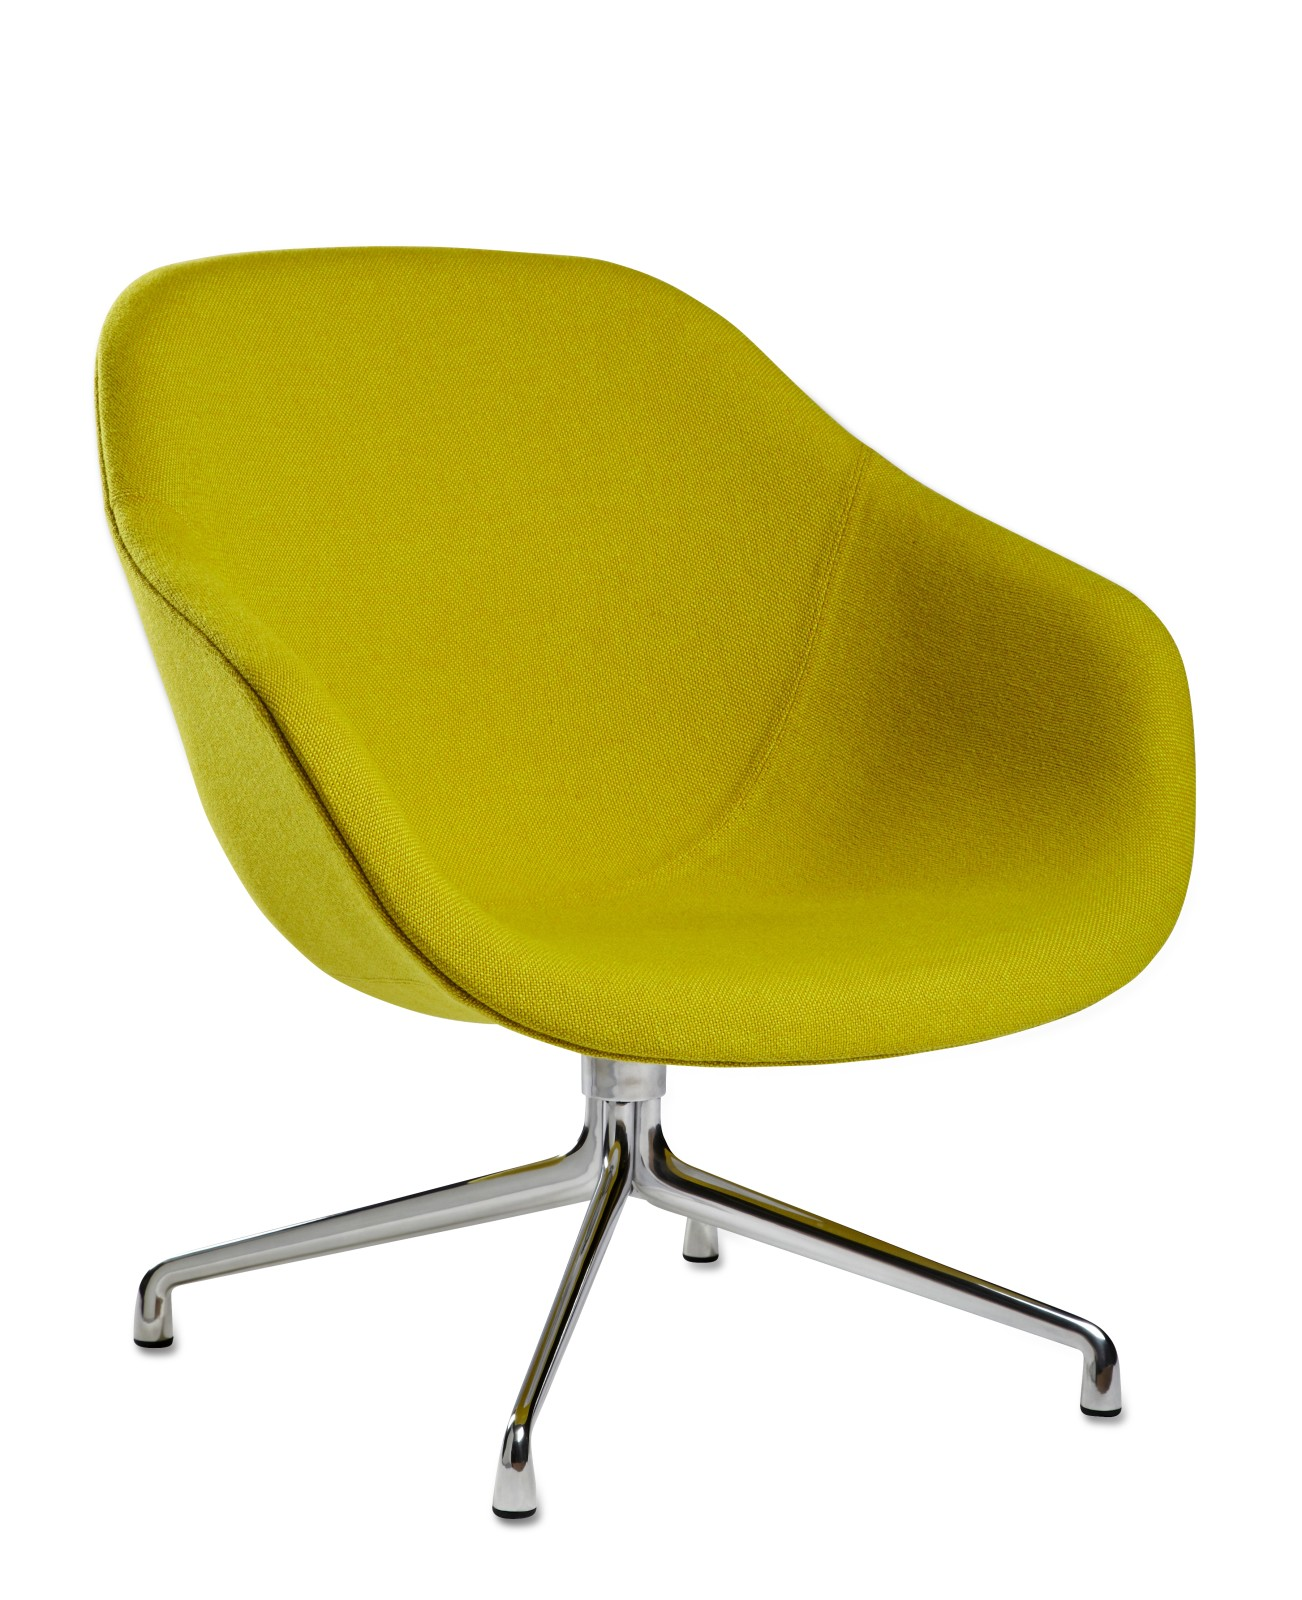 About A Lounge Chair AAL81 Hallingdal 65 100, Polished Aluminium Base